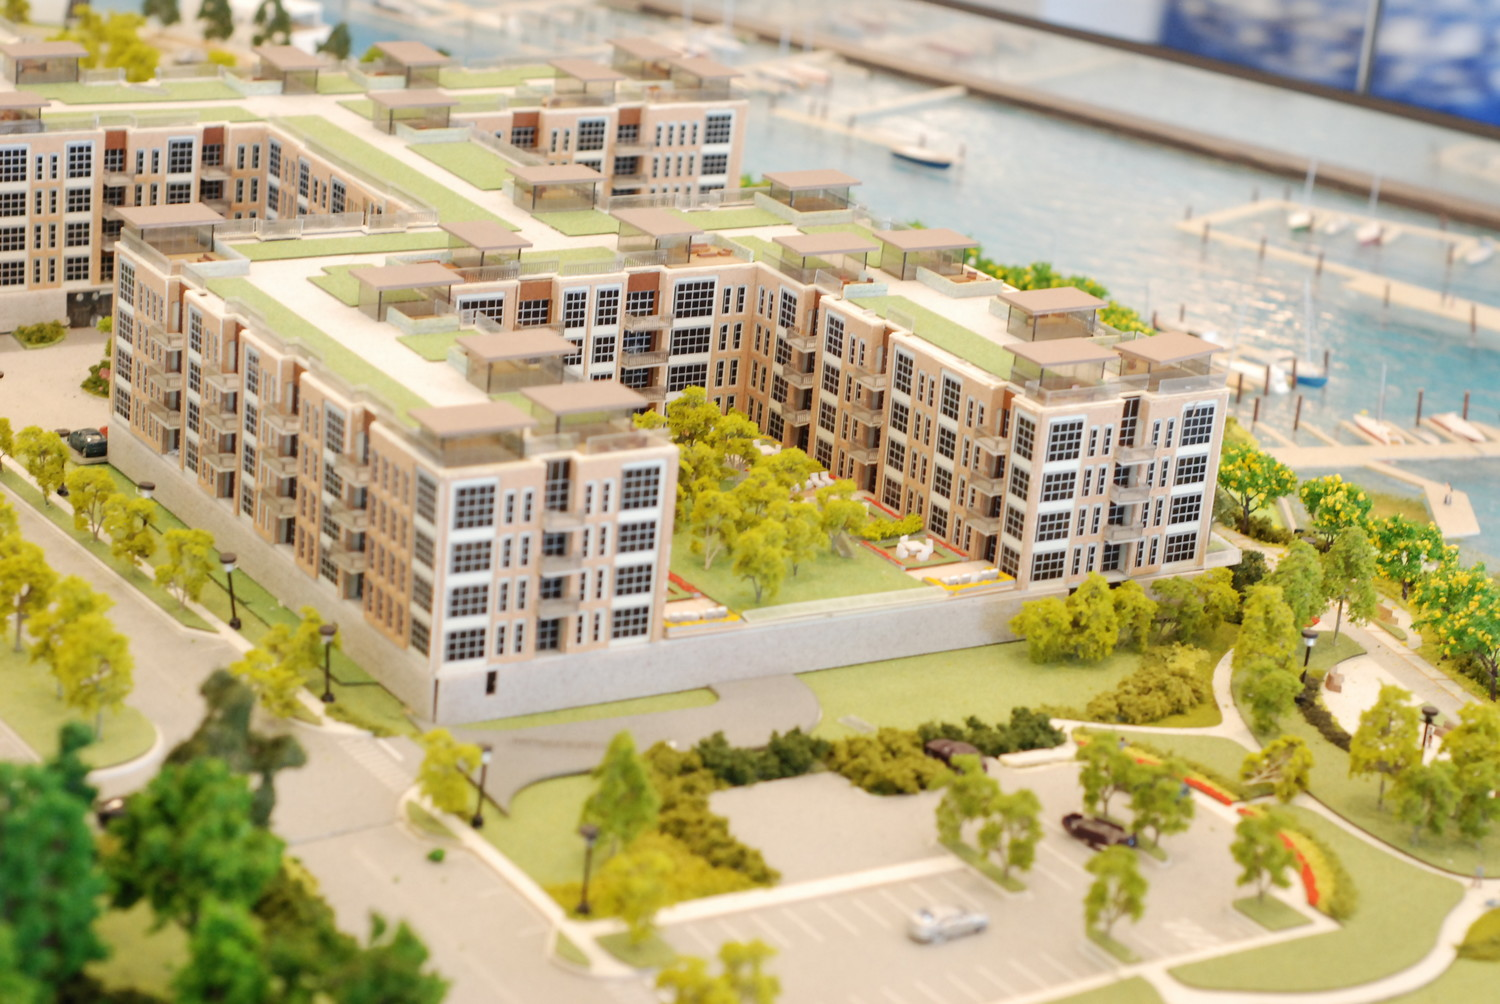 A model of the billion-dollar waterfront project shows what the development will likely end up looking like.